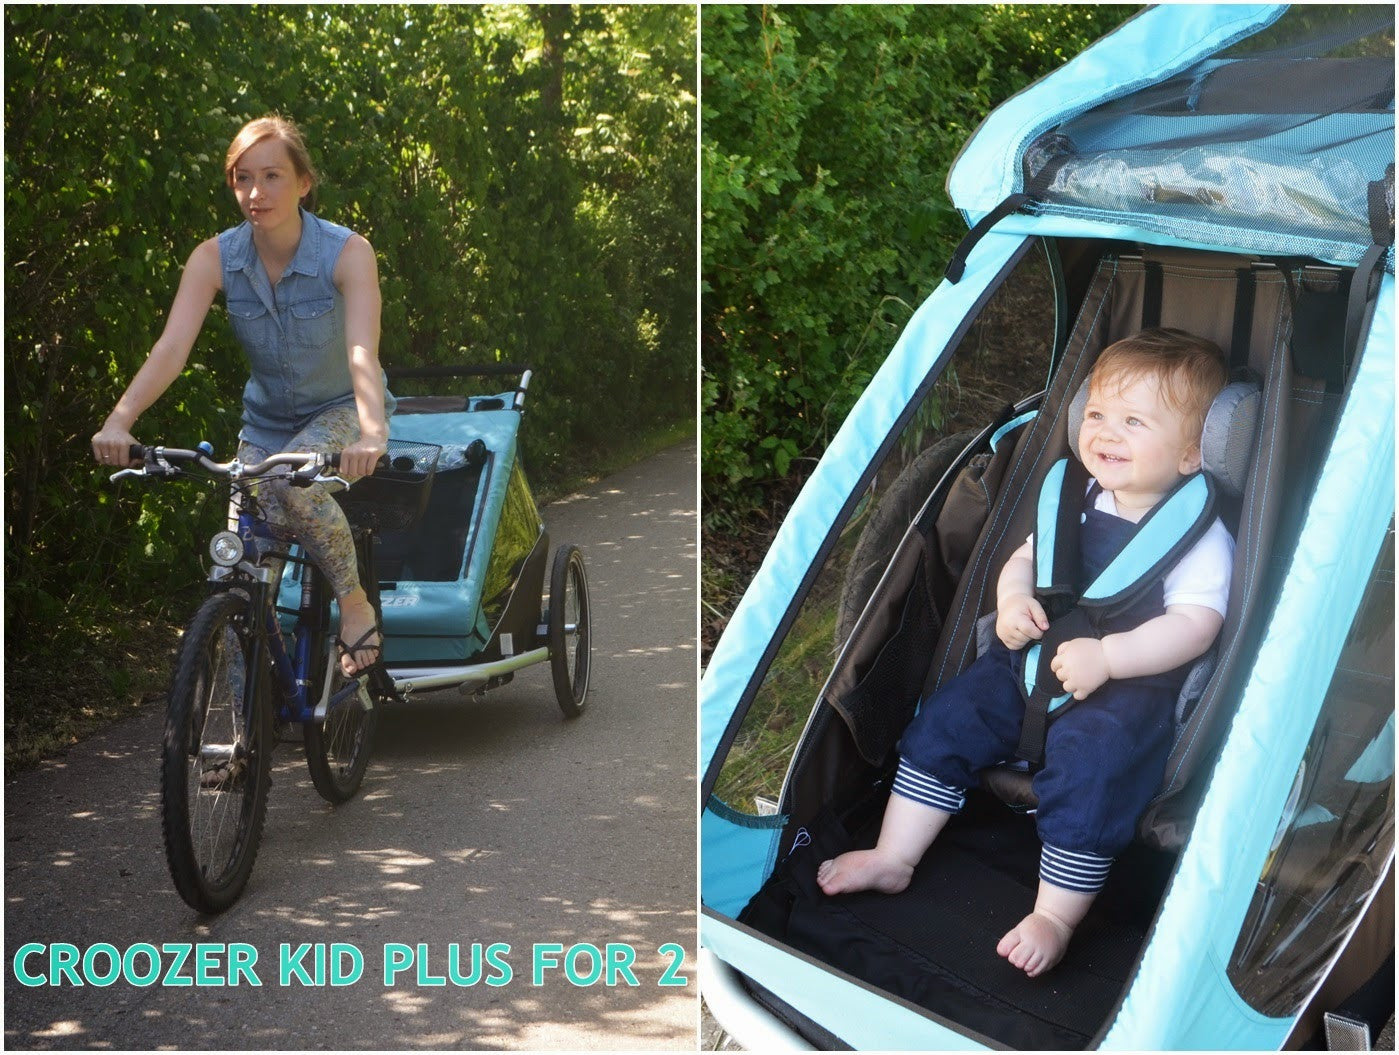 croozer kid plus for 2 bicycle trailer sky blue super. Black Bedroom Furniture Sets. Home Design Ideas